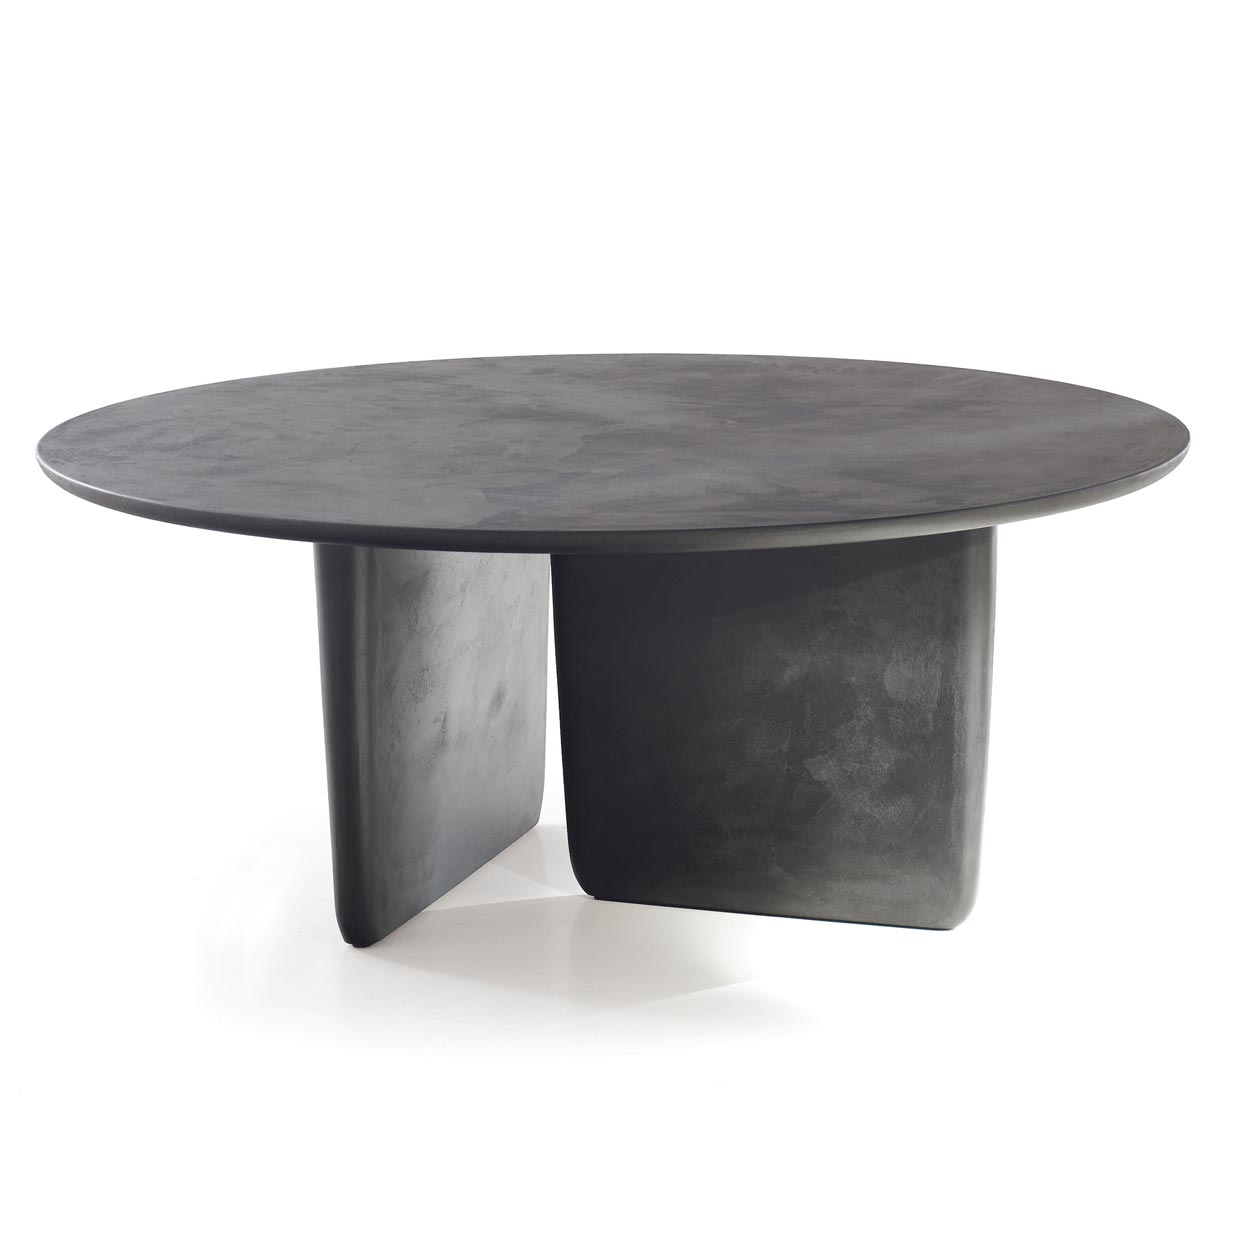 Table tobi ishi by b b italia - B b italia link table ...